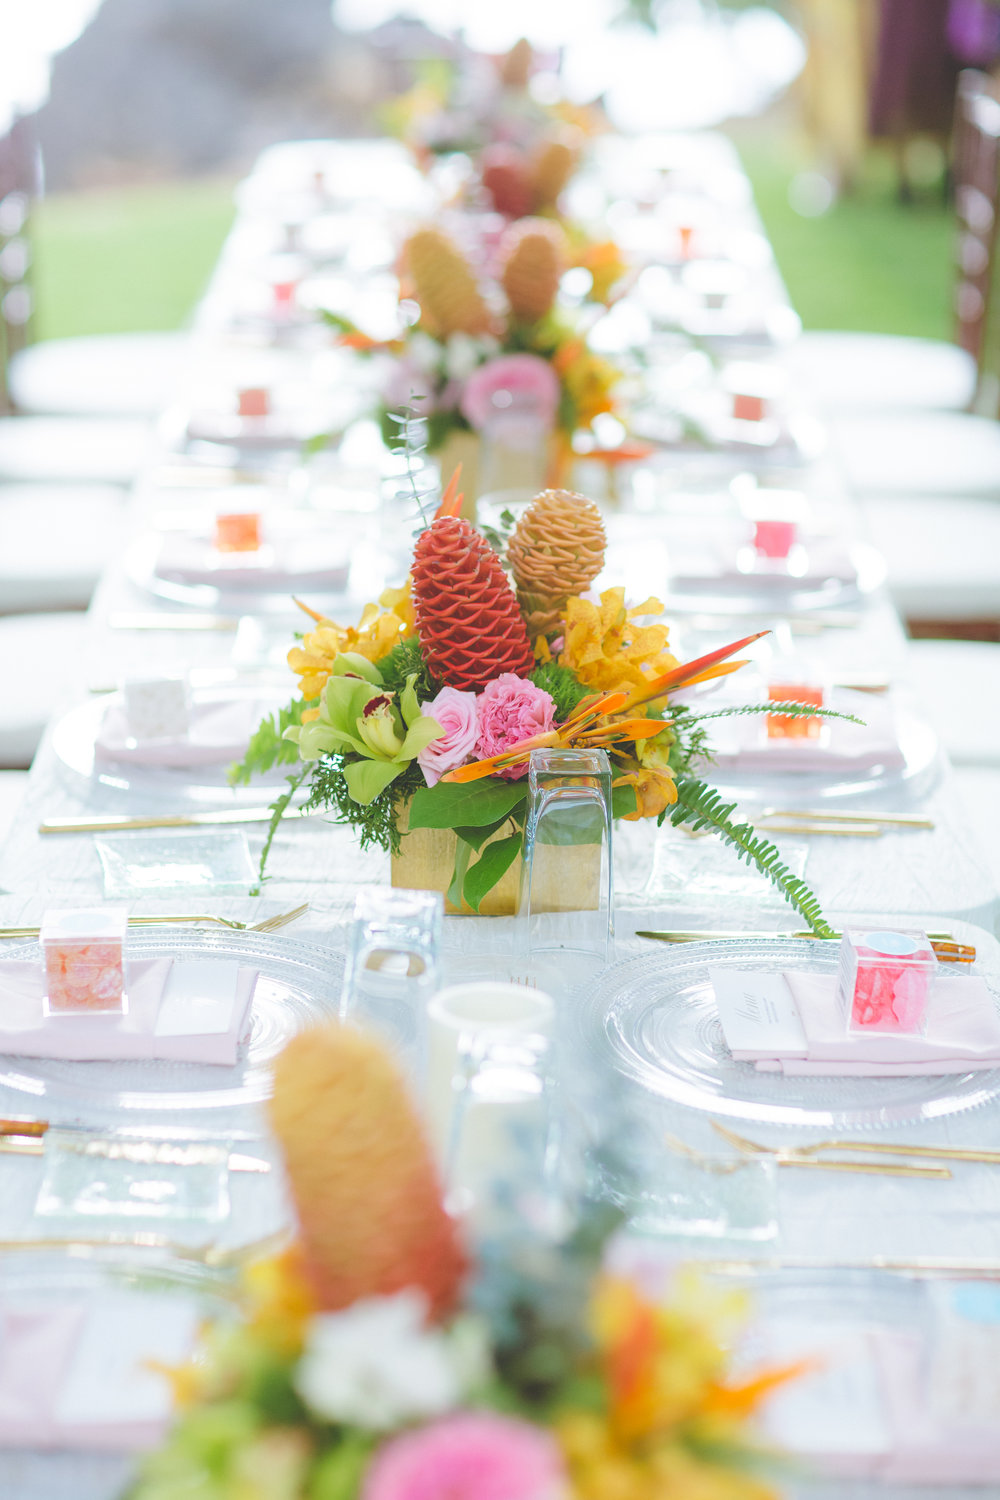 Tropical wedding table by Bliss - Dmitri and Sandra Photography